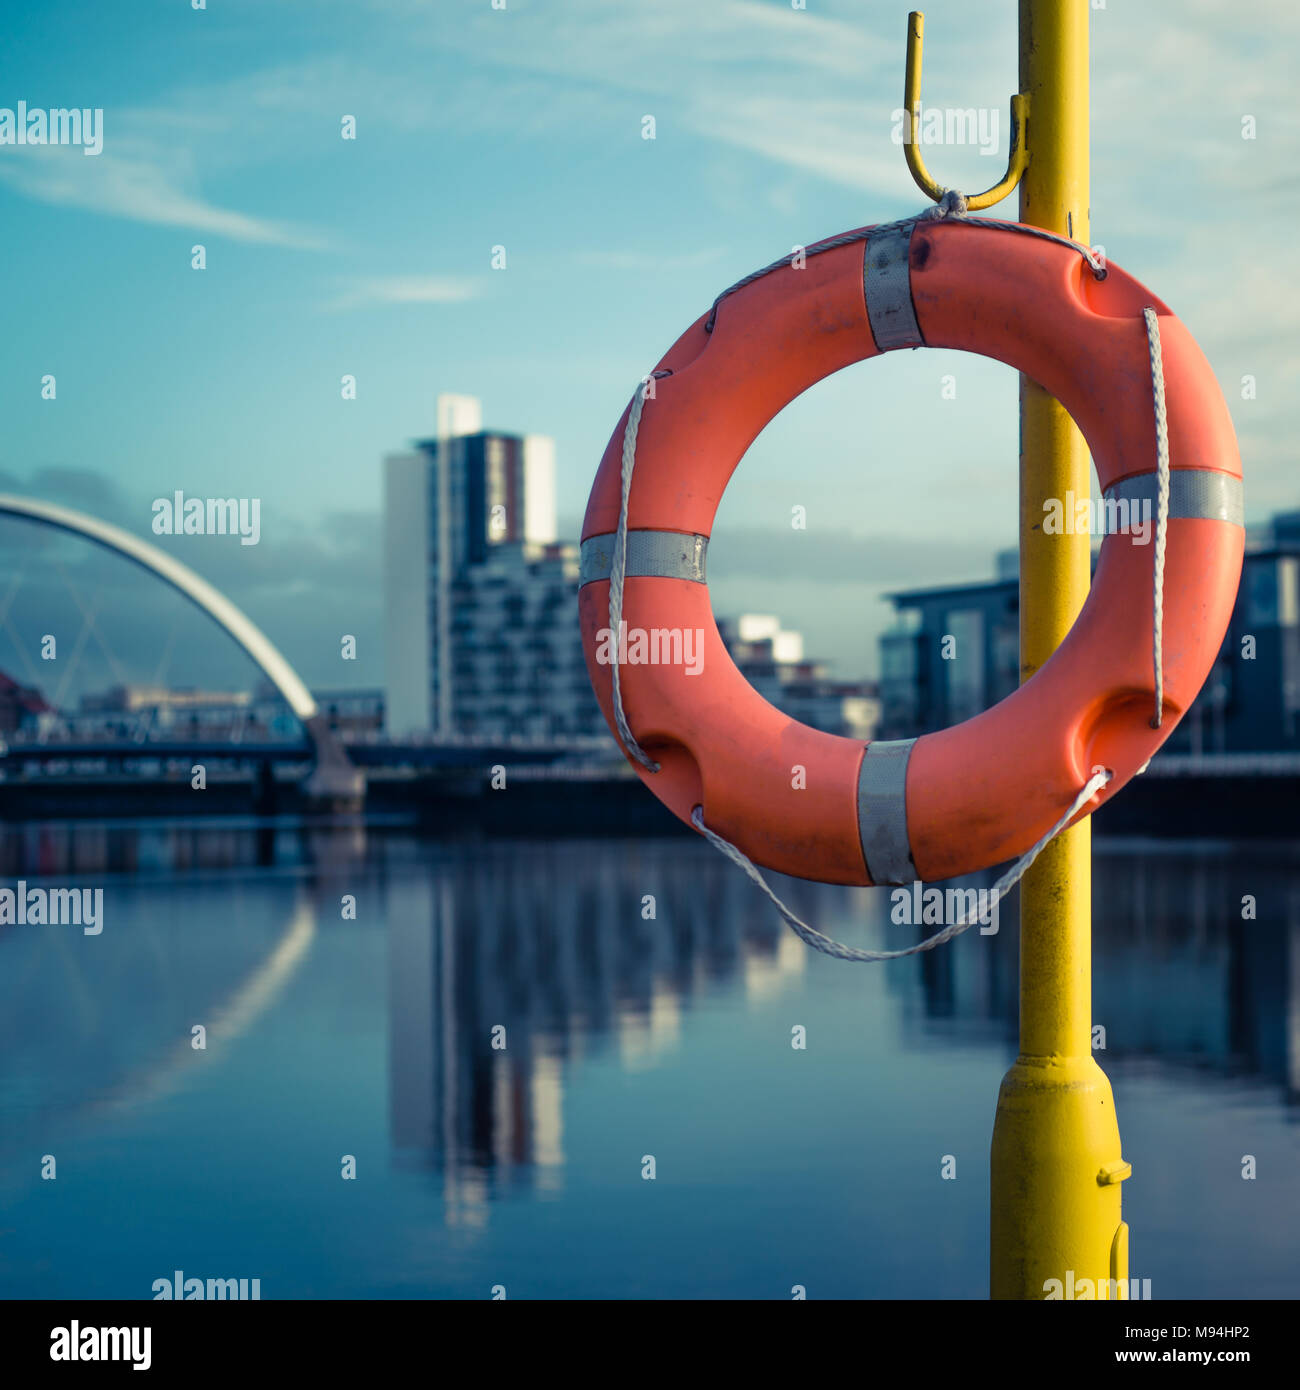 Orange Life Buoy With River Clyde and Arc Bridge in the Background - Stock Image